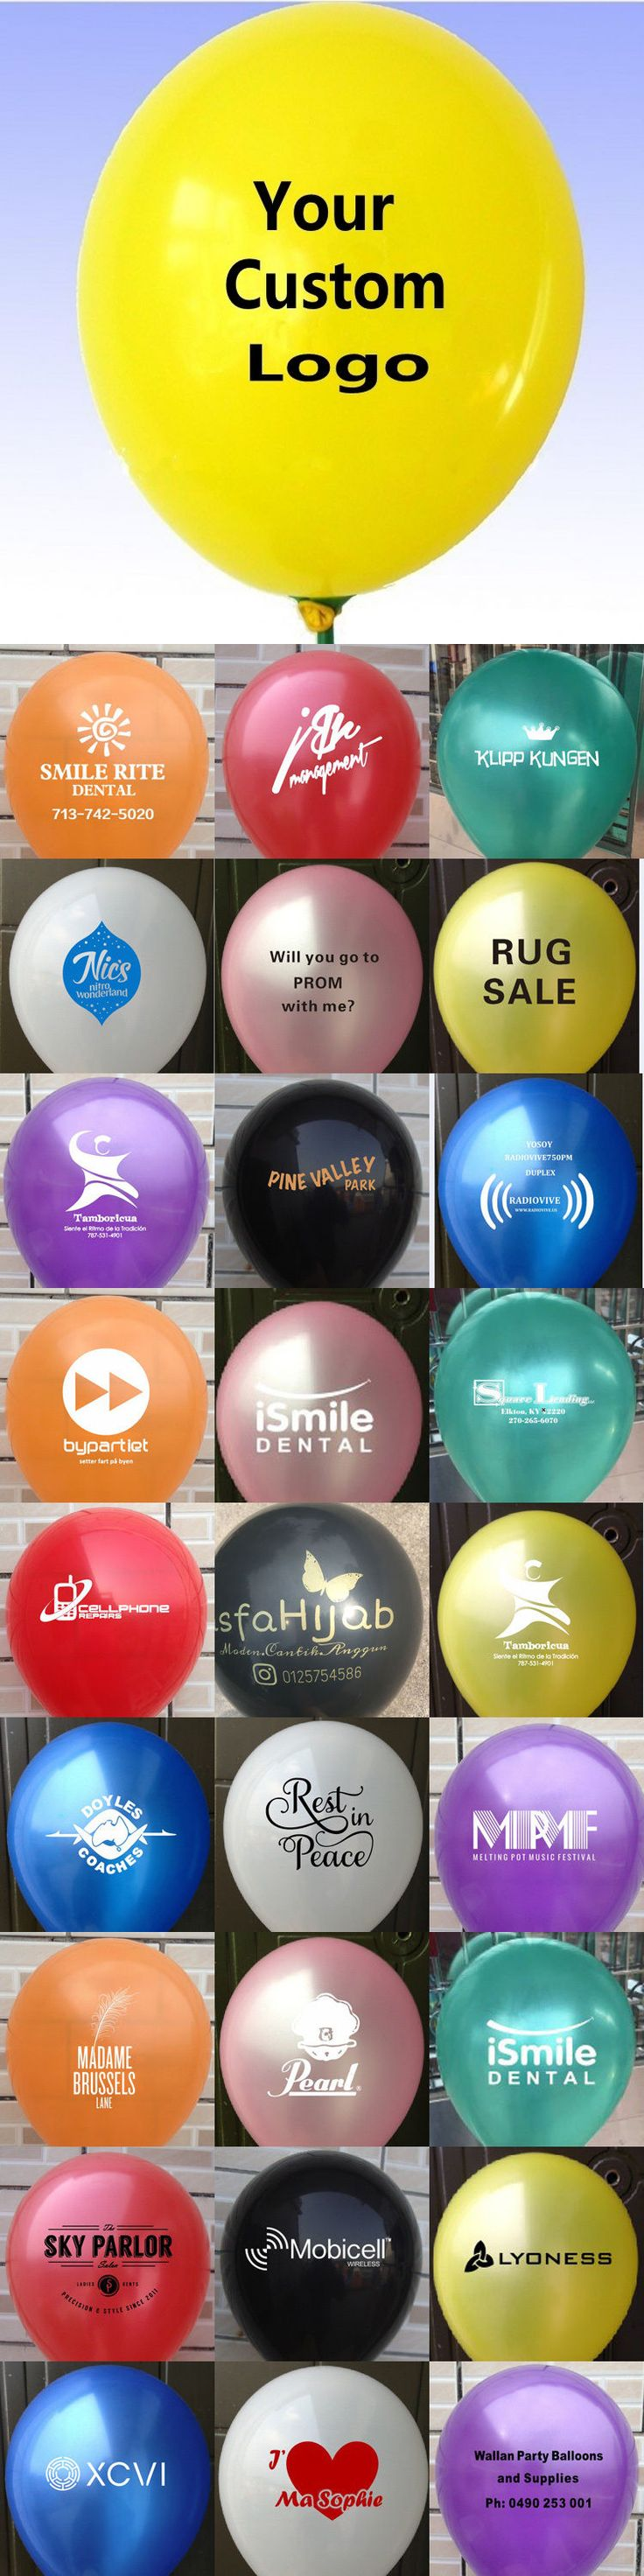 Balloons 26384: 200Pcs 10 Inch Custom Printed Latex Balloon For Advertising Promotion -> BUY IT NOW ONLY: $33.25 on eBay!